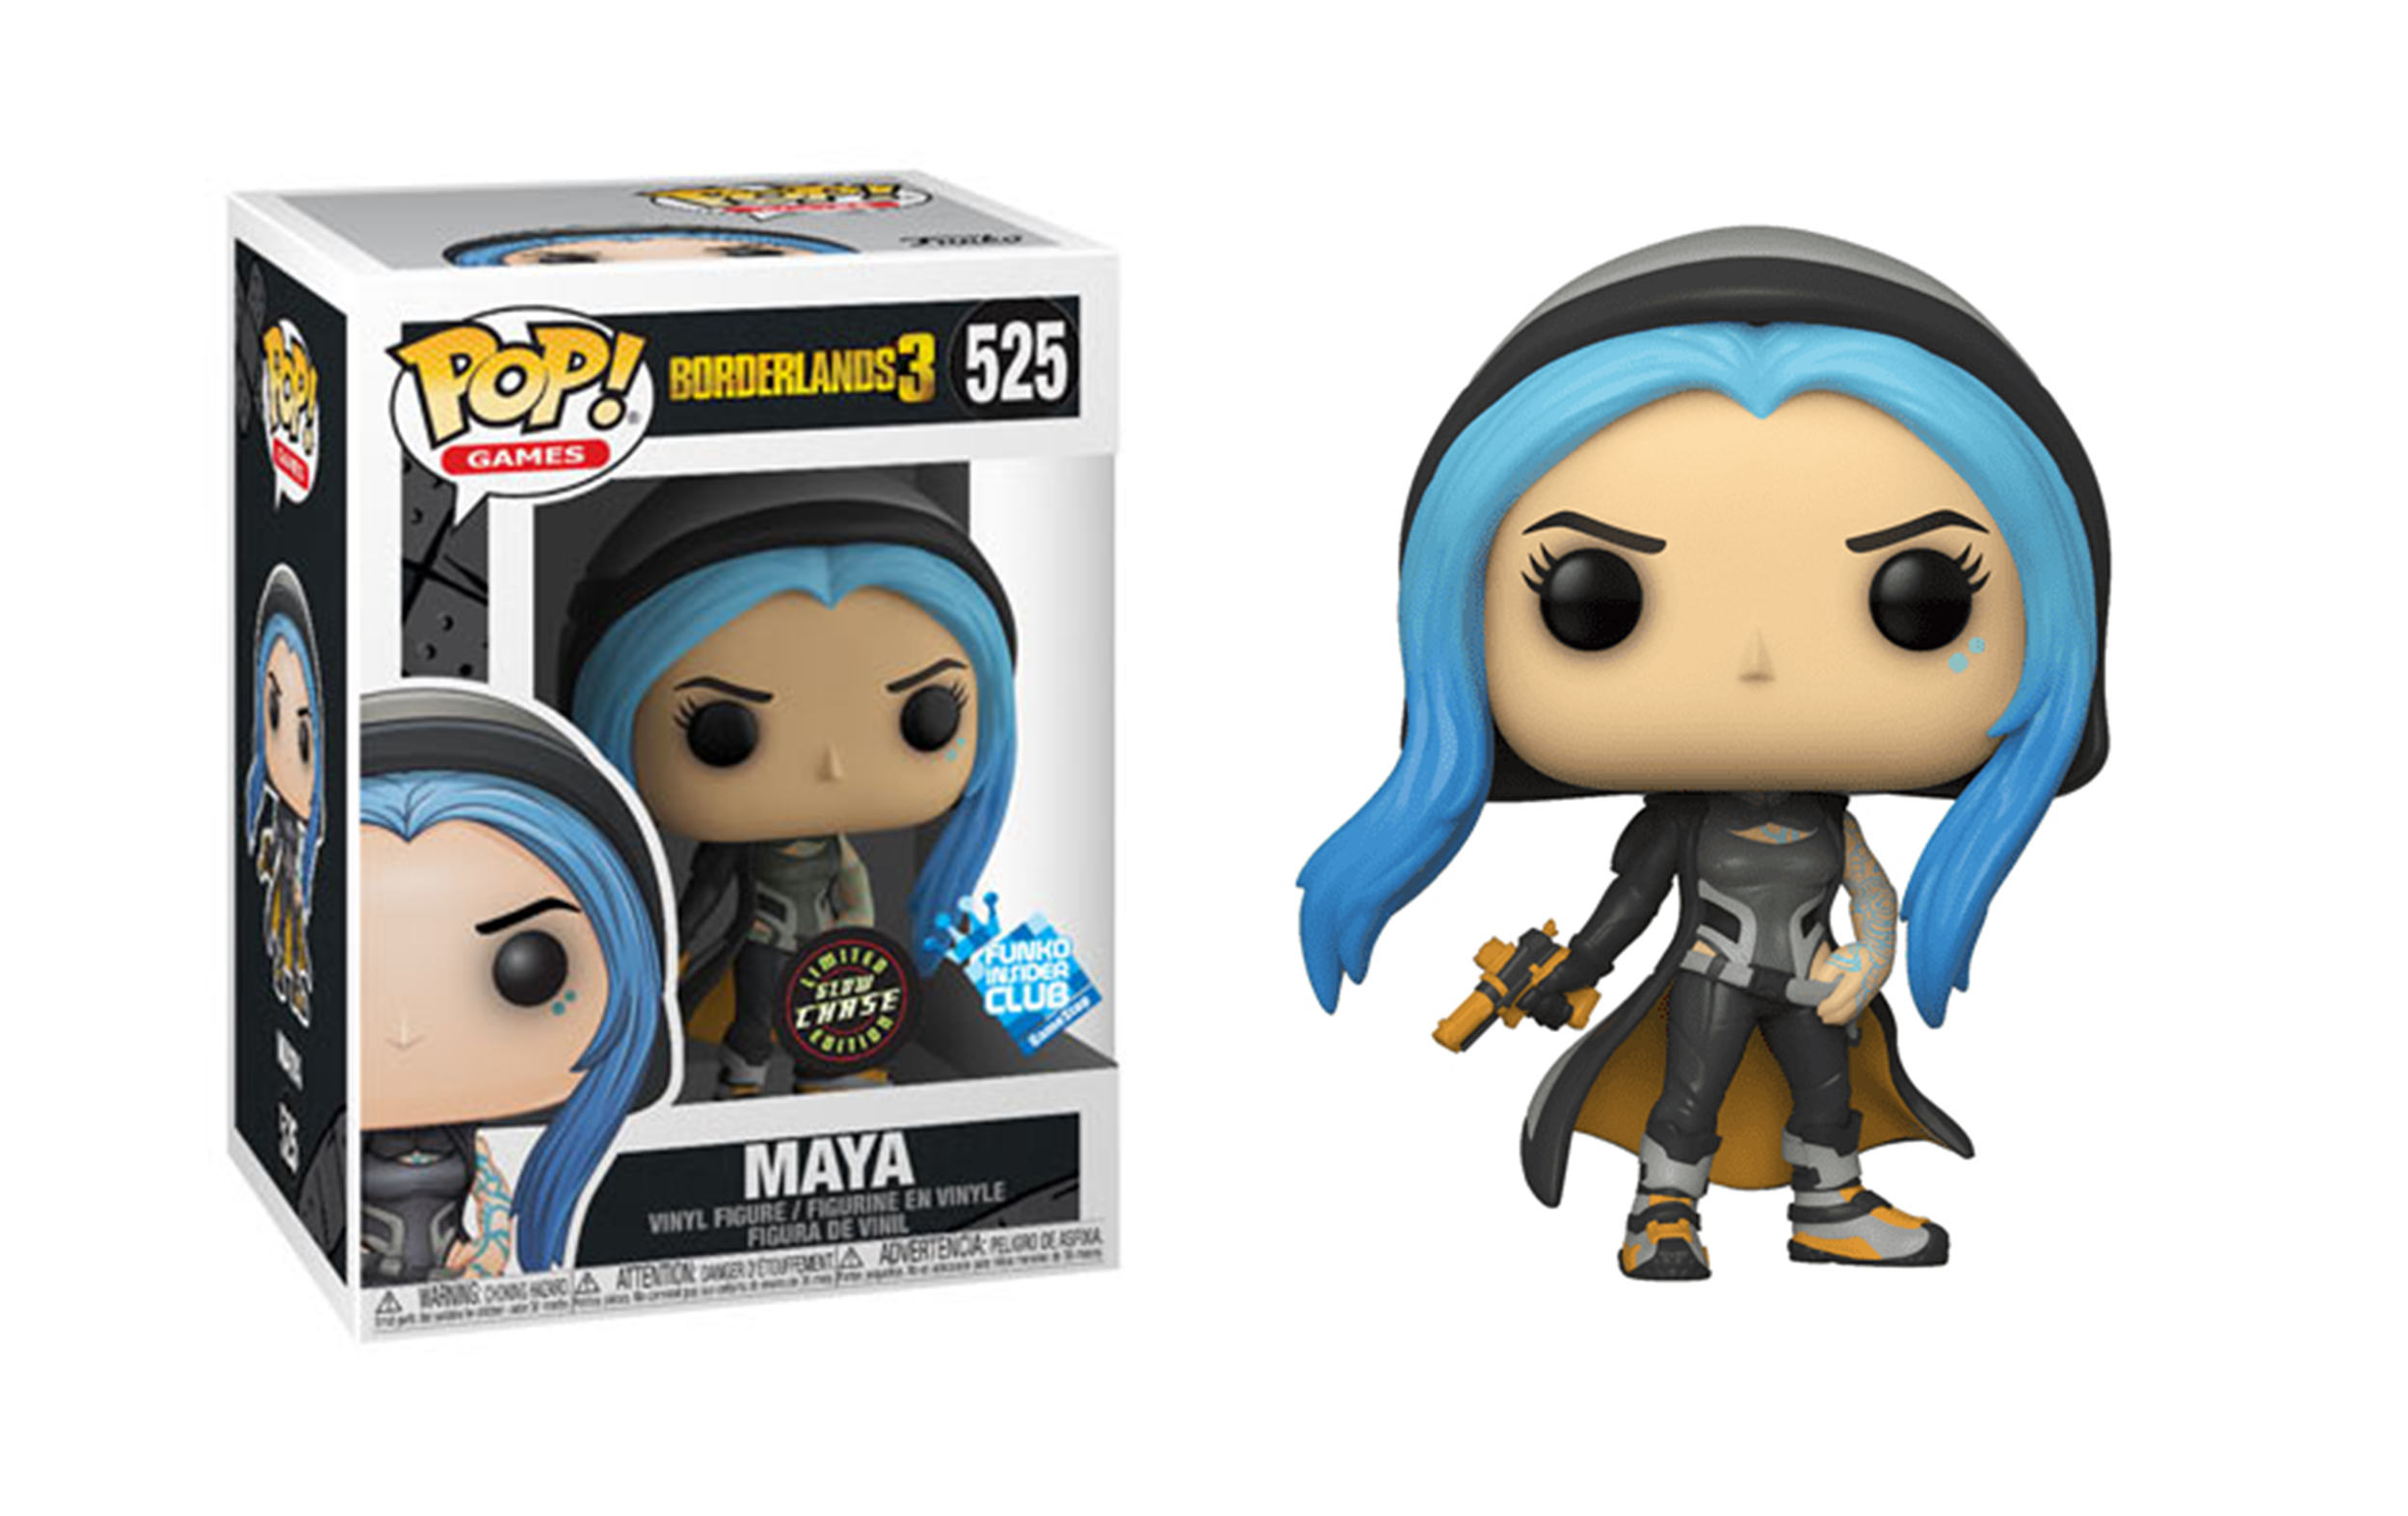 Borderlands 3 Maya Chase GITD 525 Funko POP Vinyl Figure